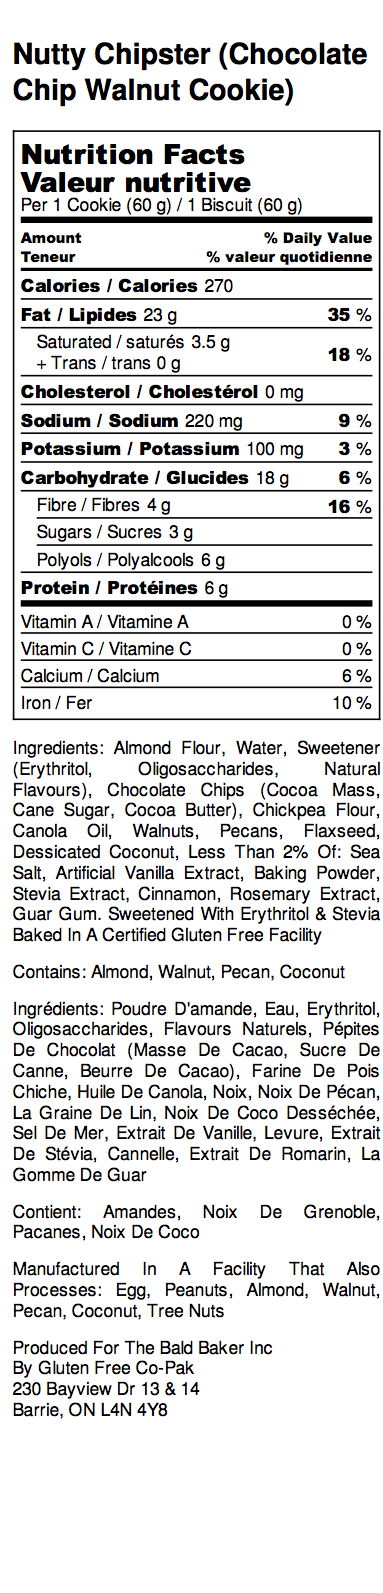 products/Nutty_Chipster_Chocolate_Chip_Walnut_Cookie_-_Nutrition_Label_3-163247.png